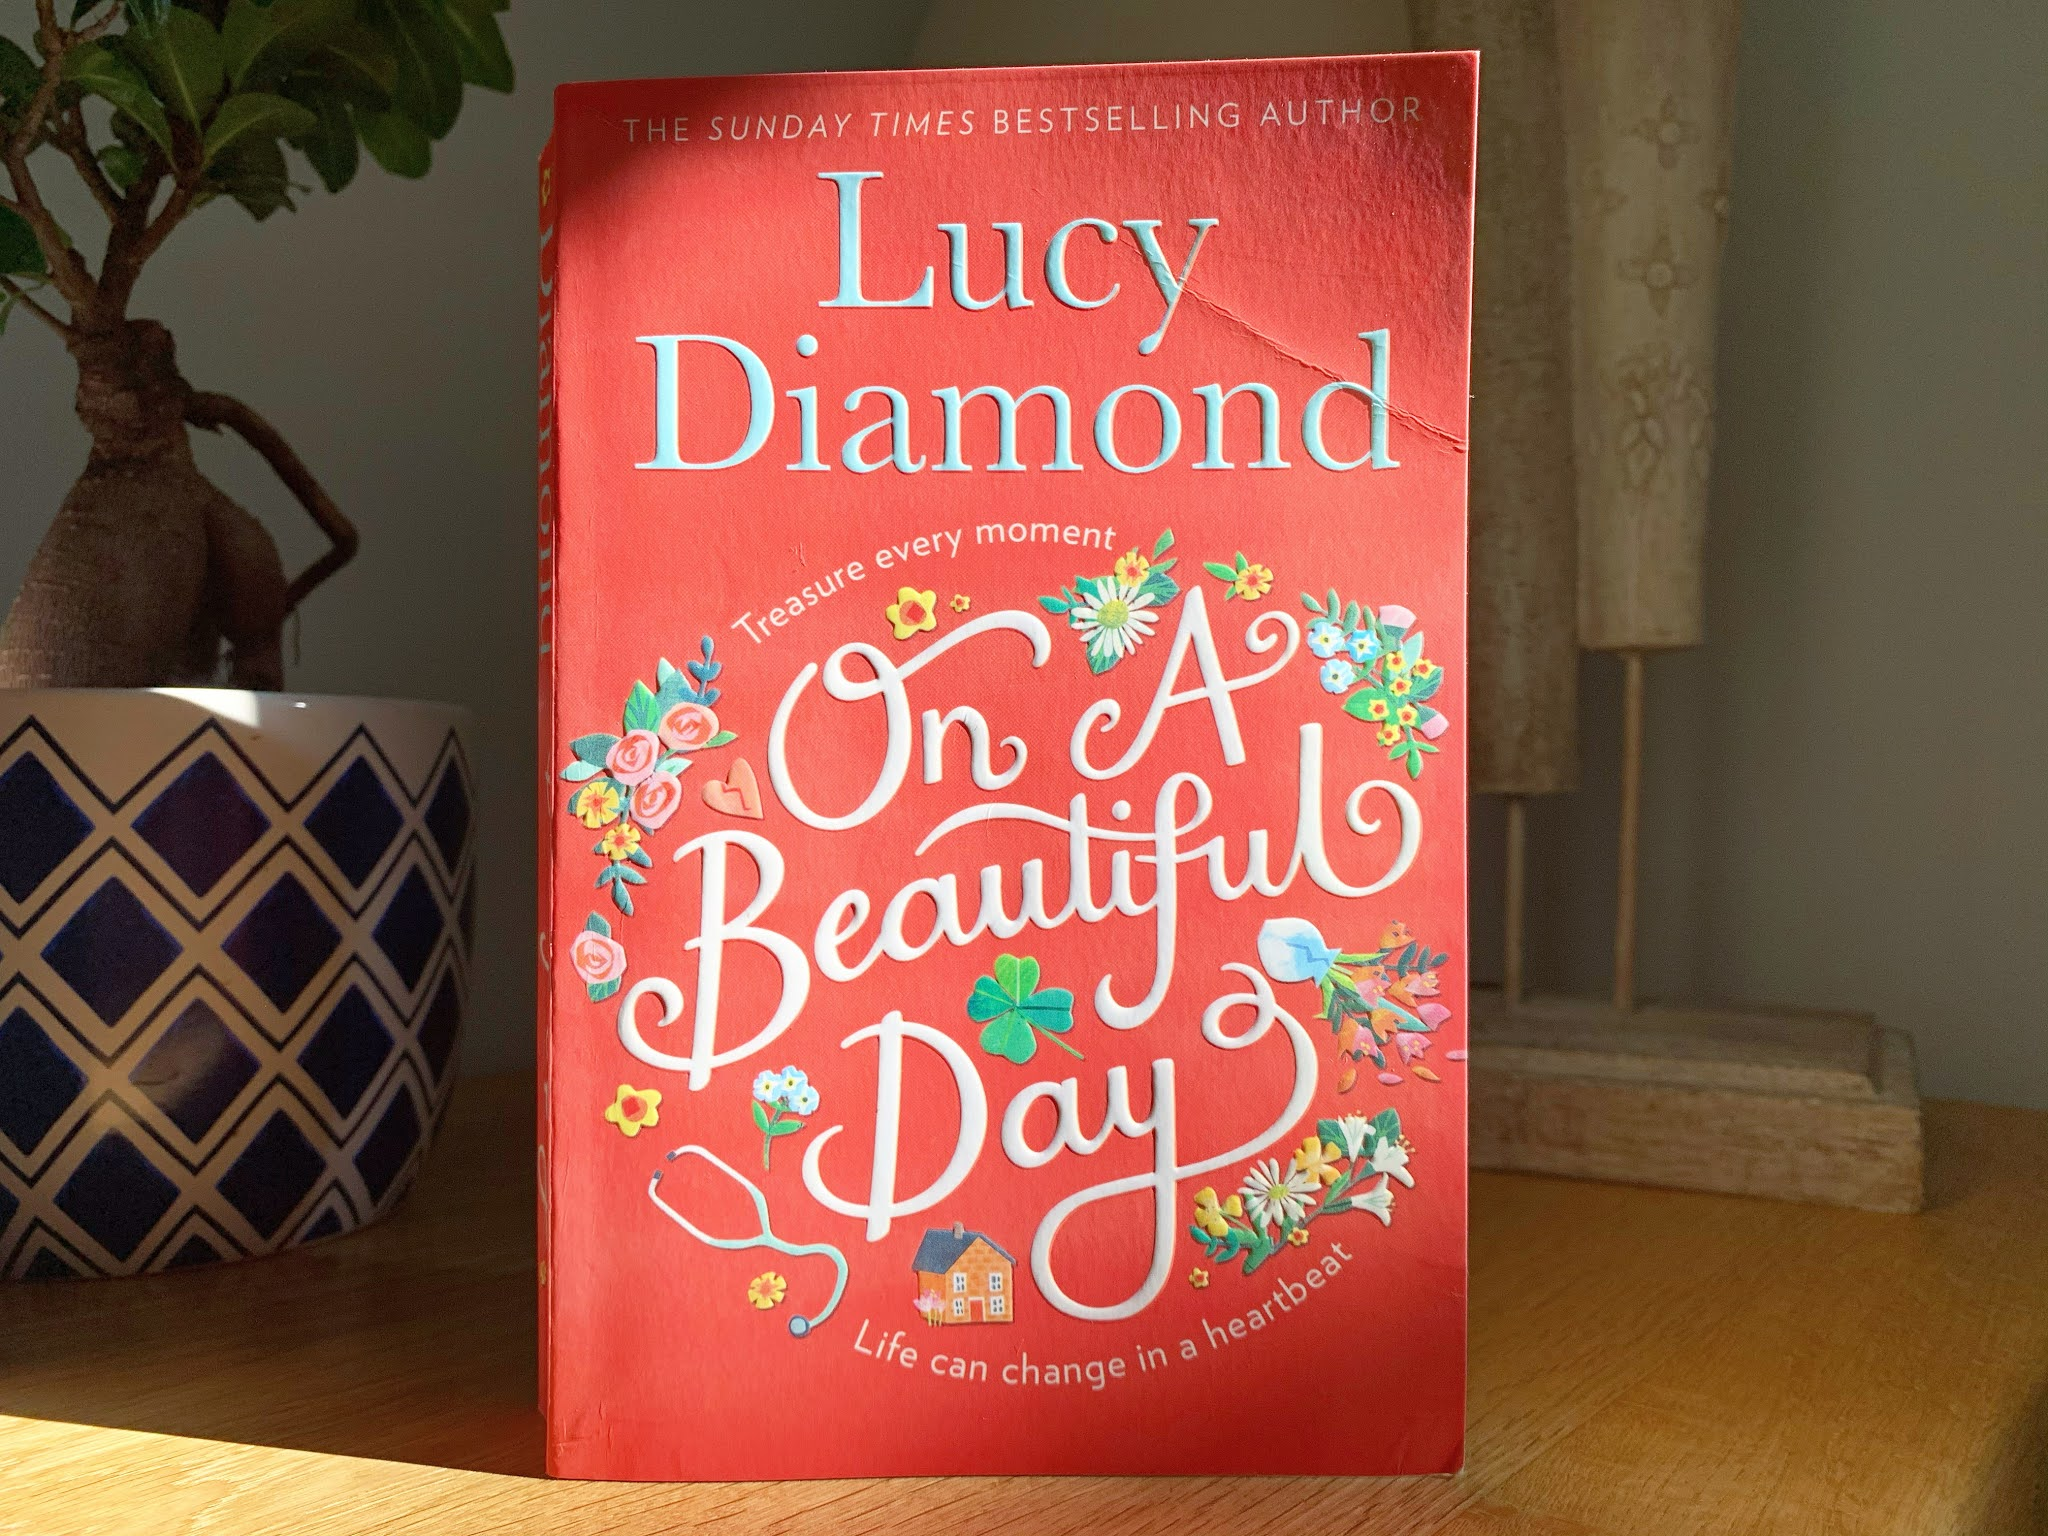 On a Beautiful Day by Lucy Diamond book on a shelf